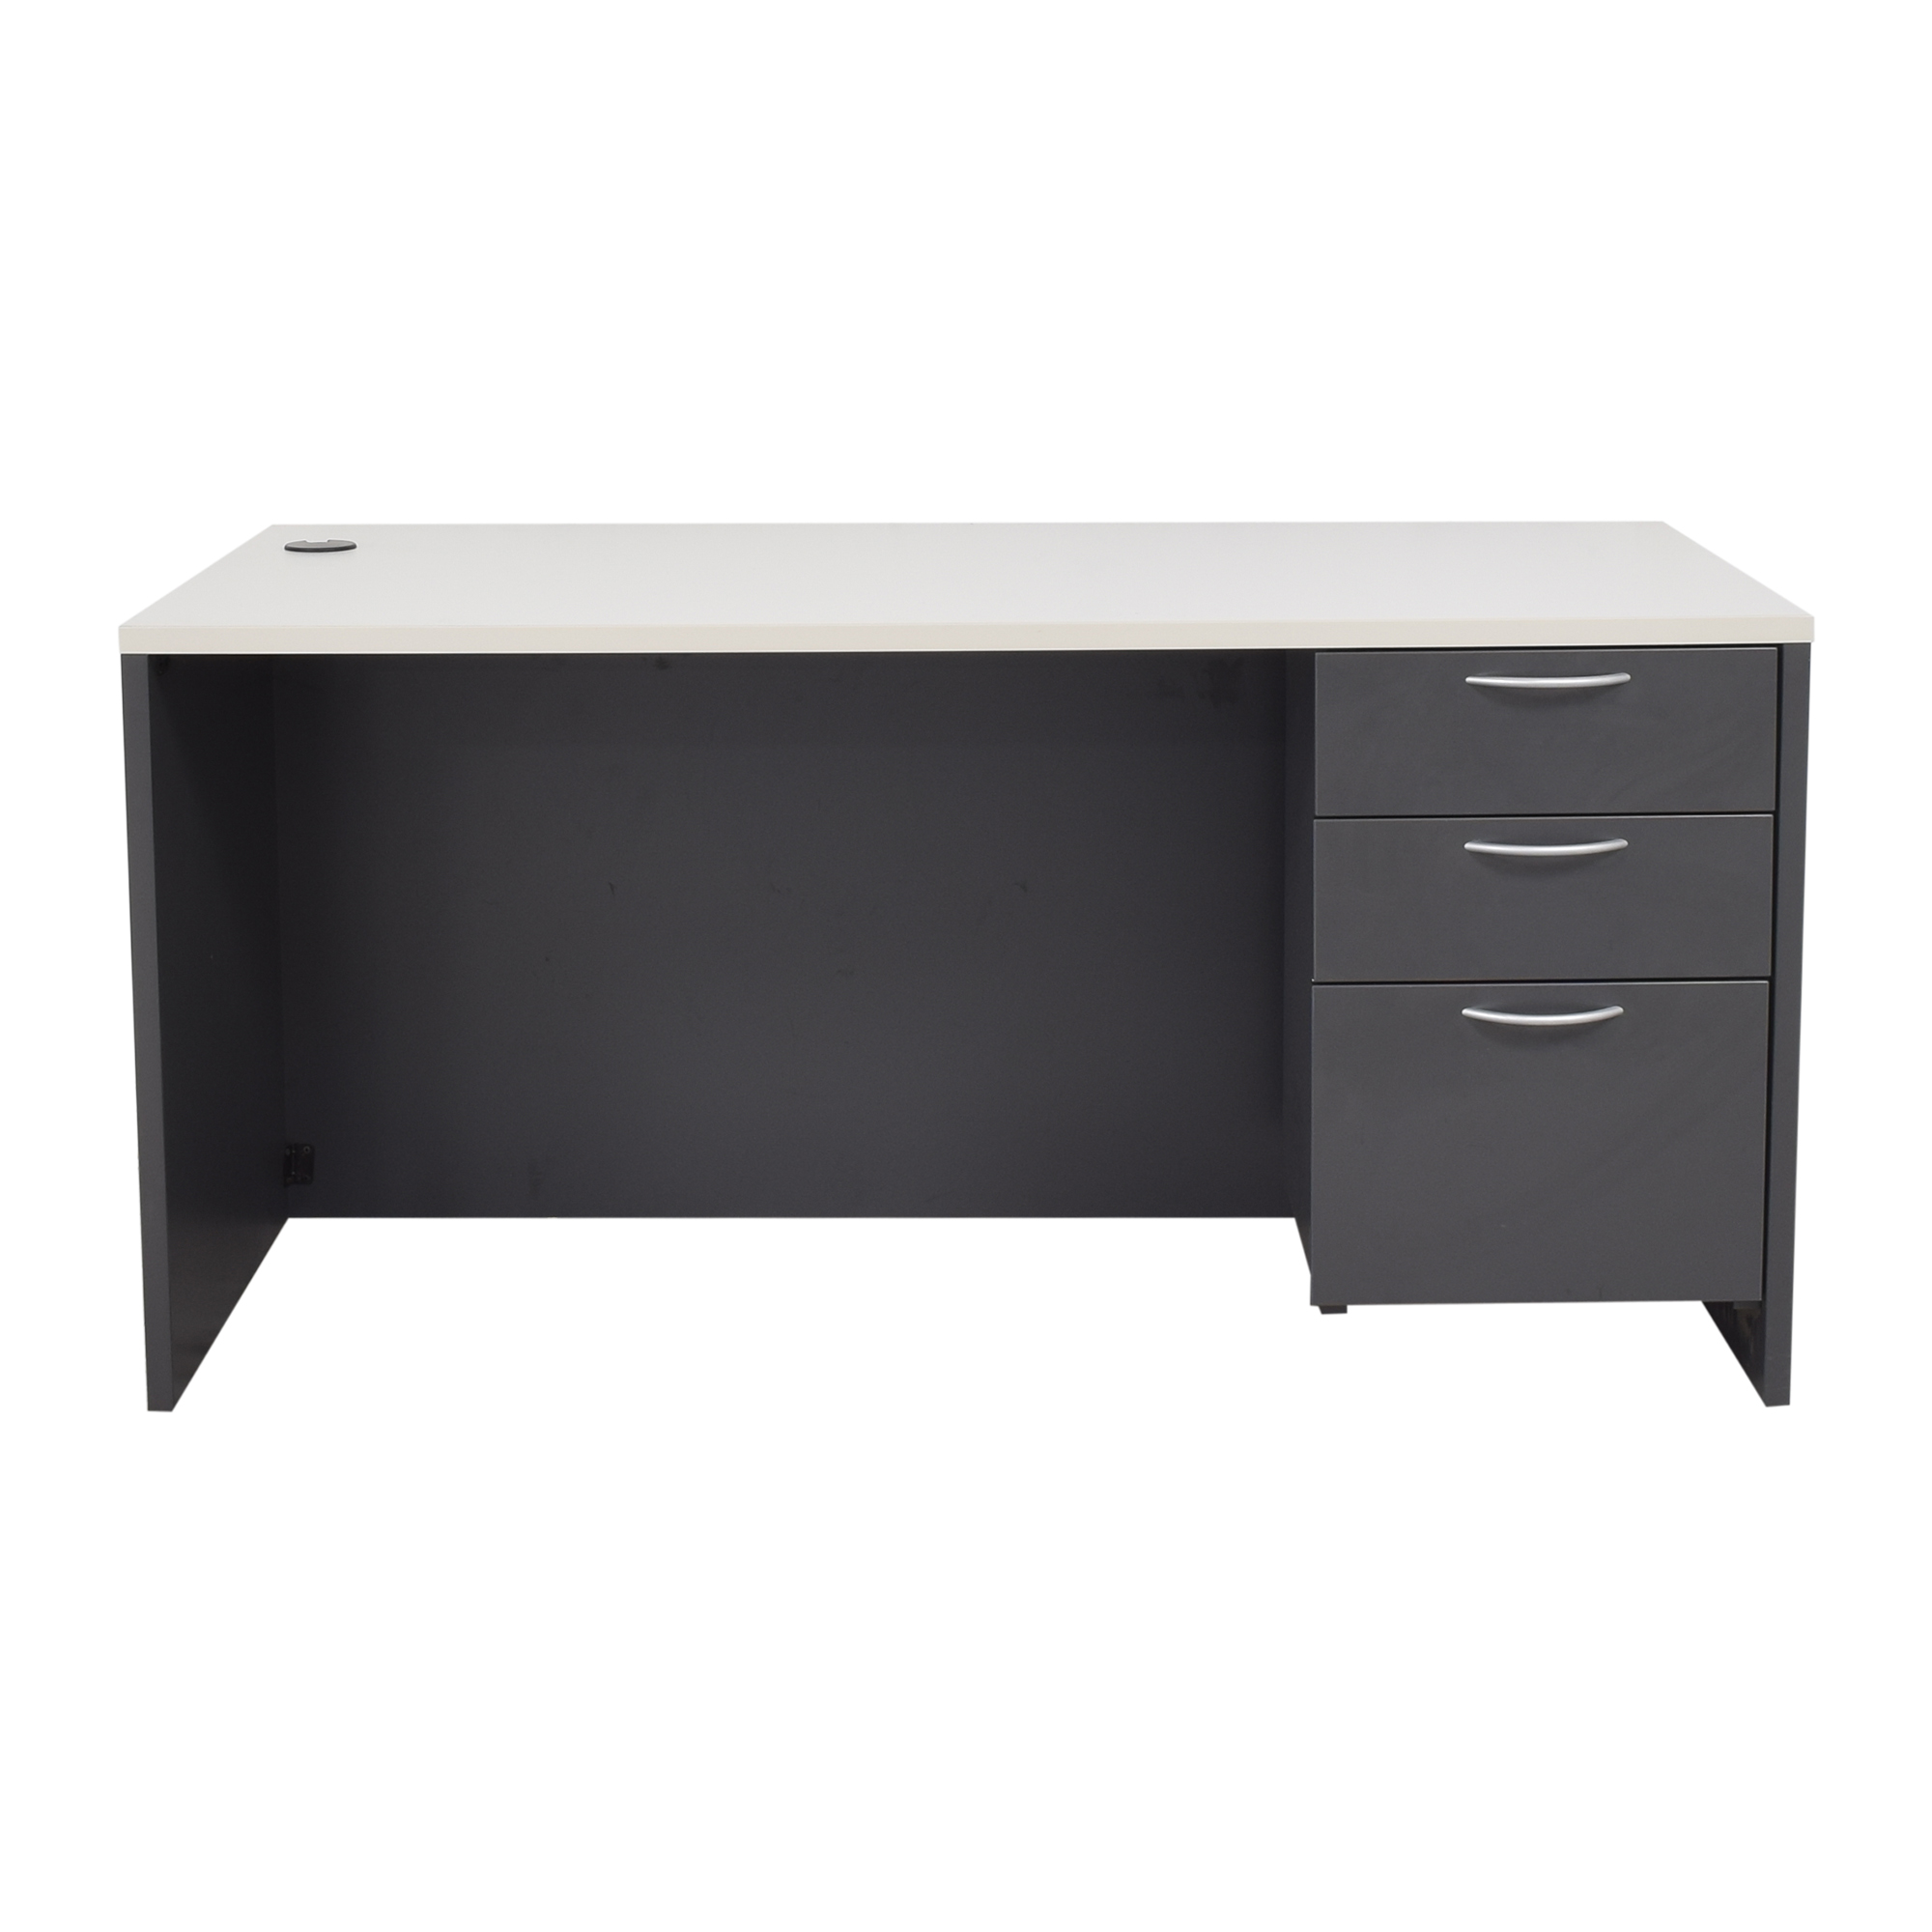 Office Furniture Heaven Office Furniture Heaven Three Drawer Desk discount